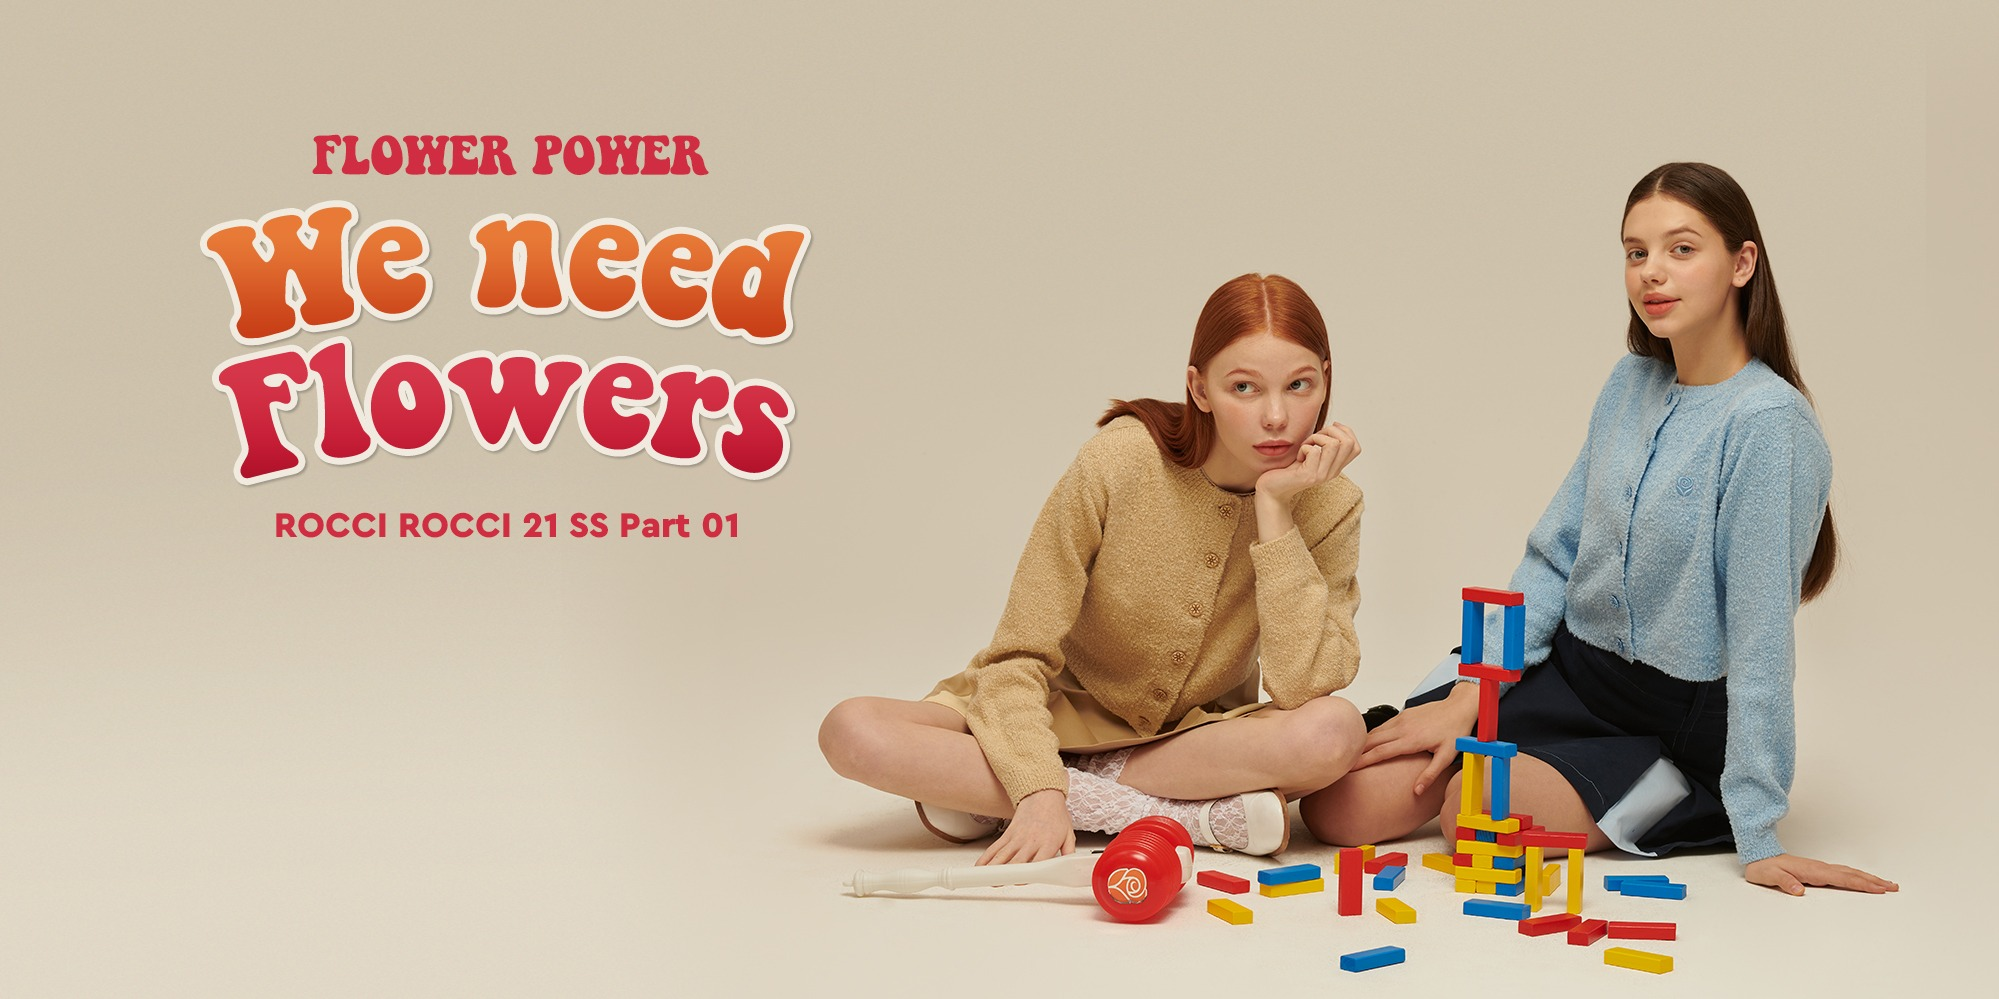 21 SS Part 01. flower power - We need flowers21 SS Part 01. flower power - We need flowers자체브랜드